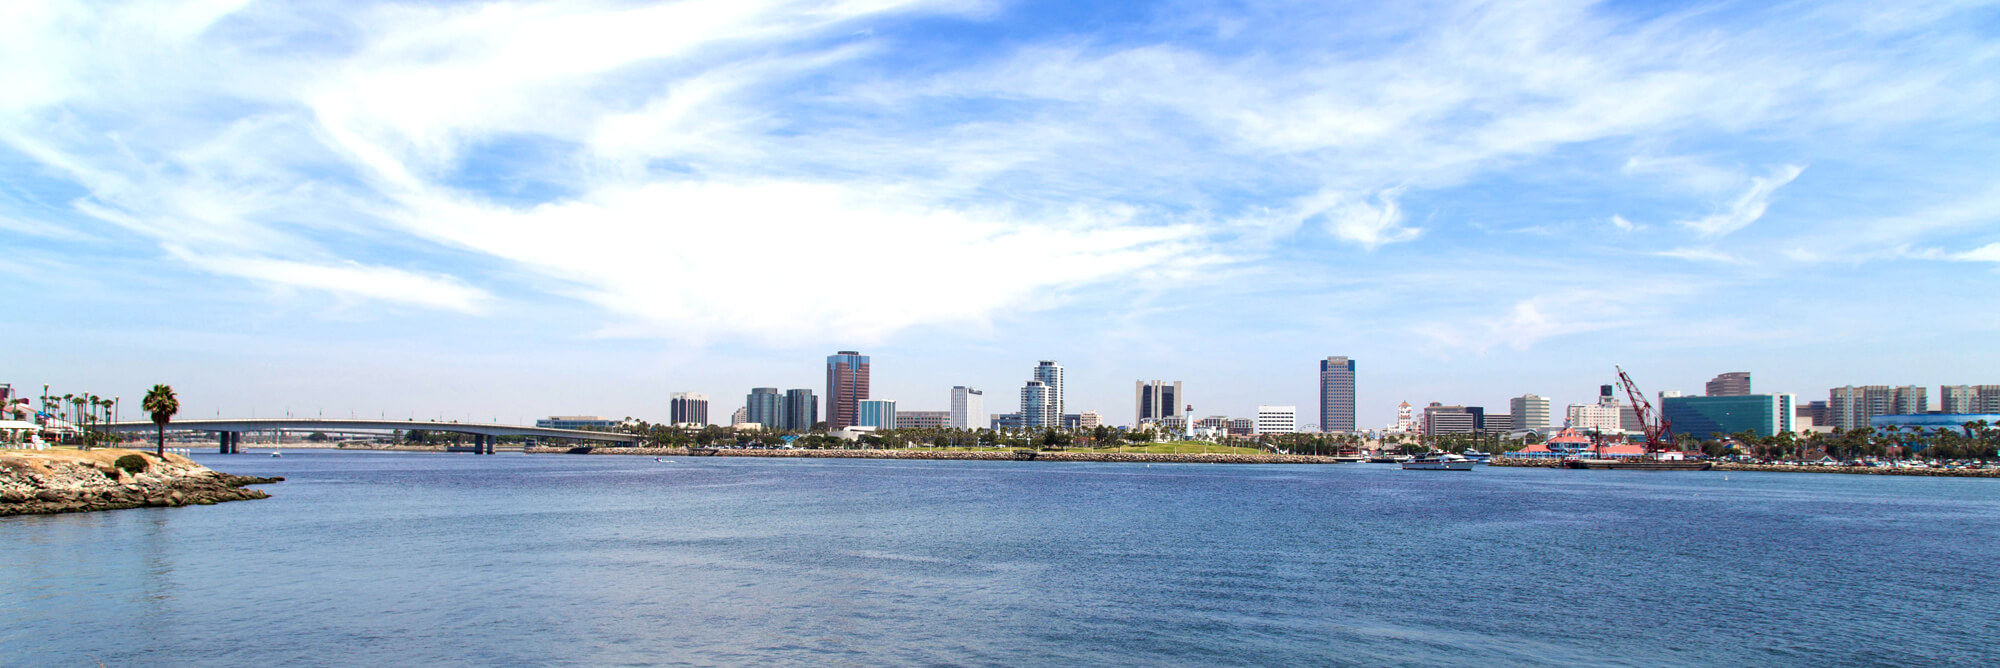 A wide panoramic view of Long Beach and a bridge